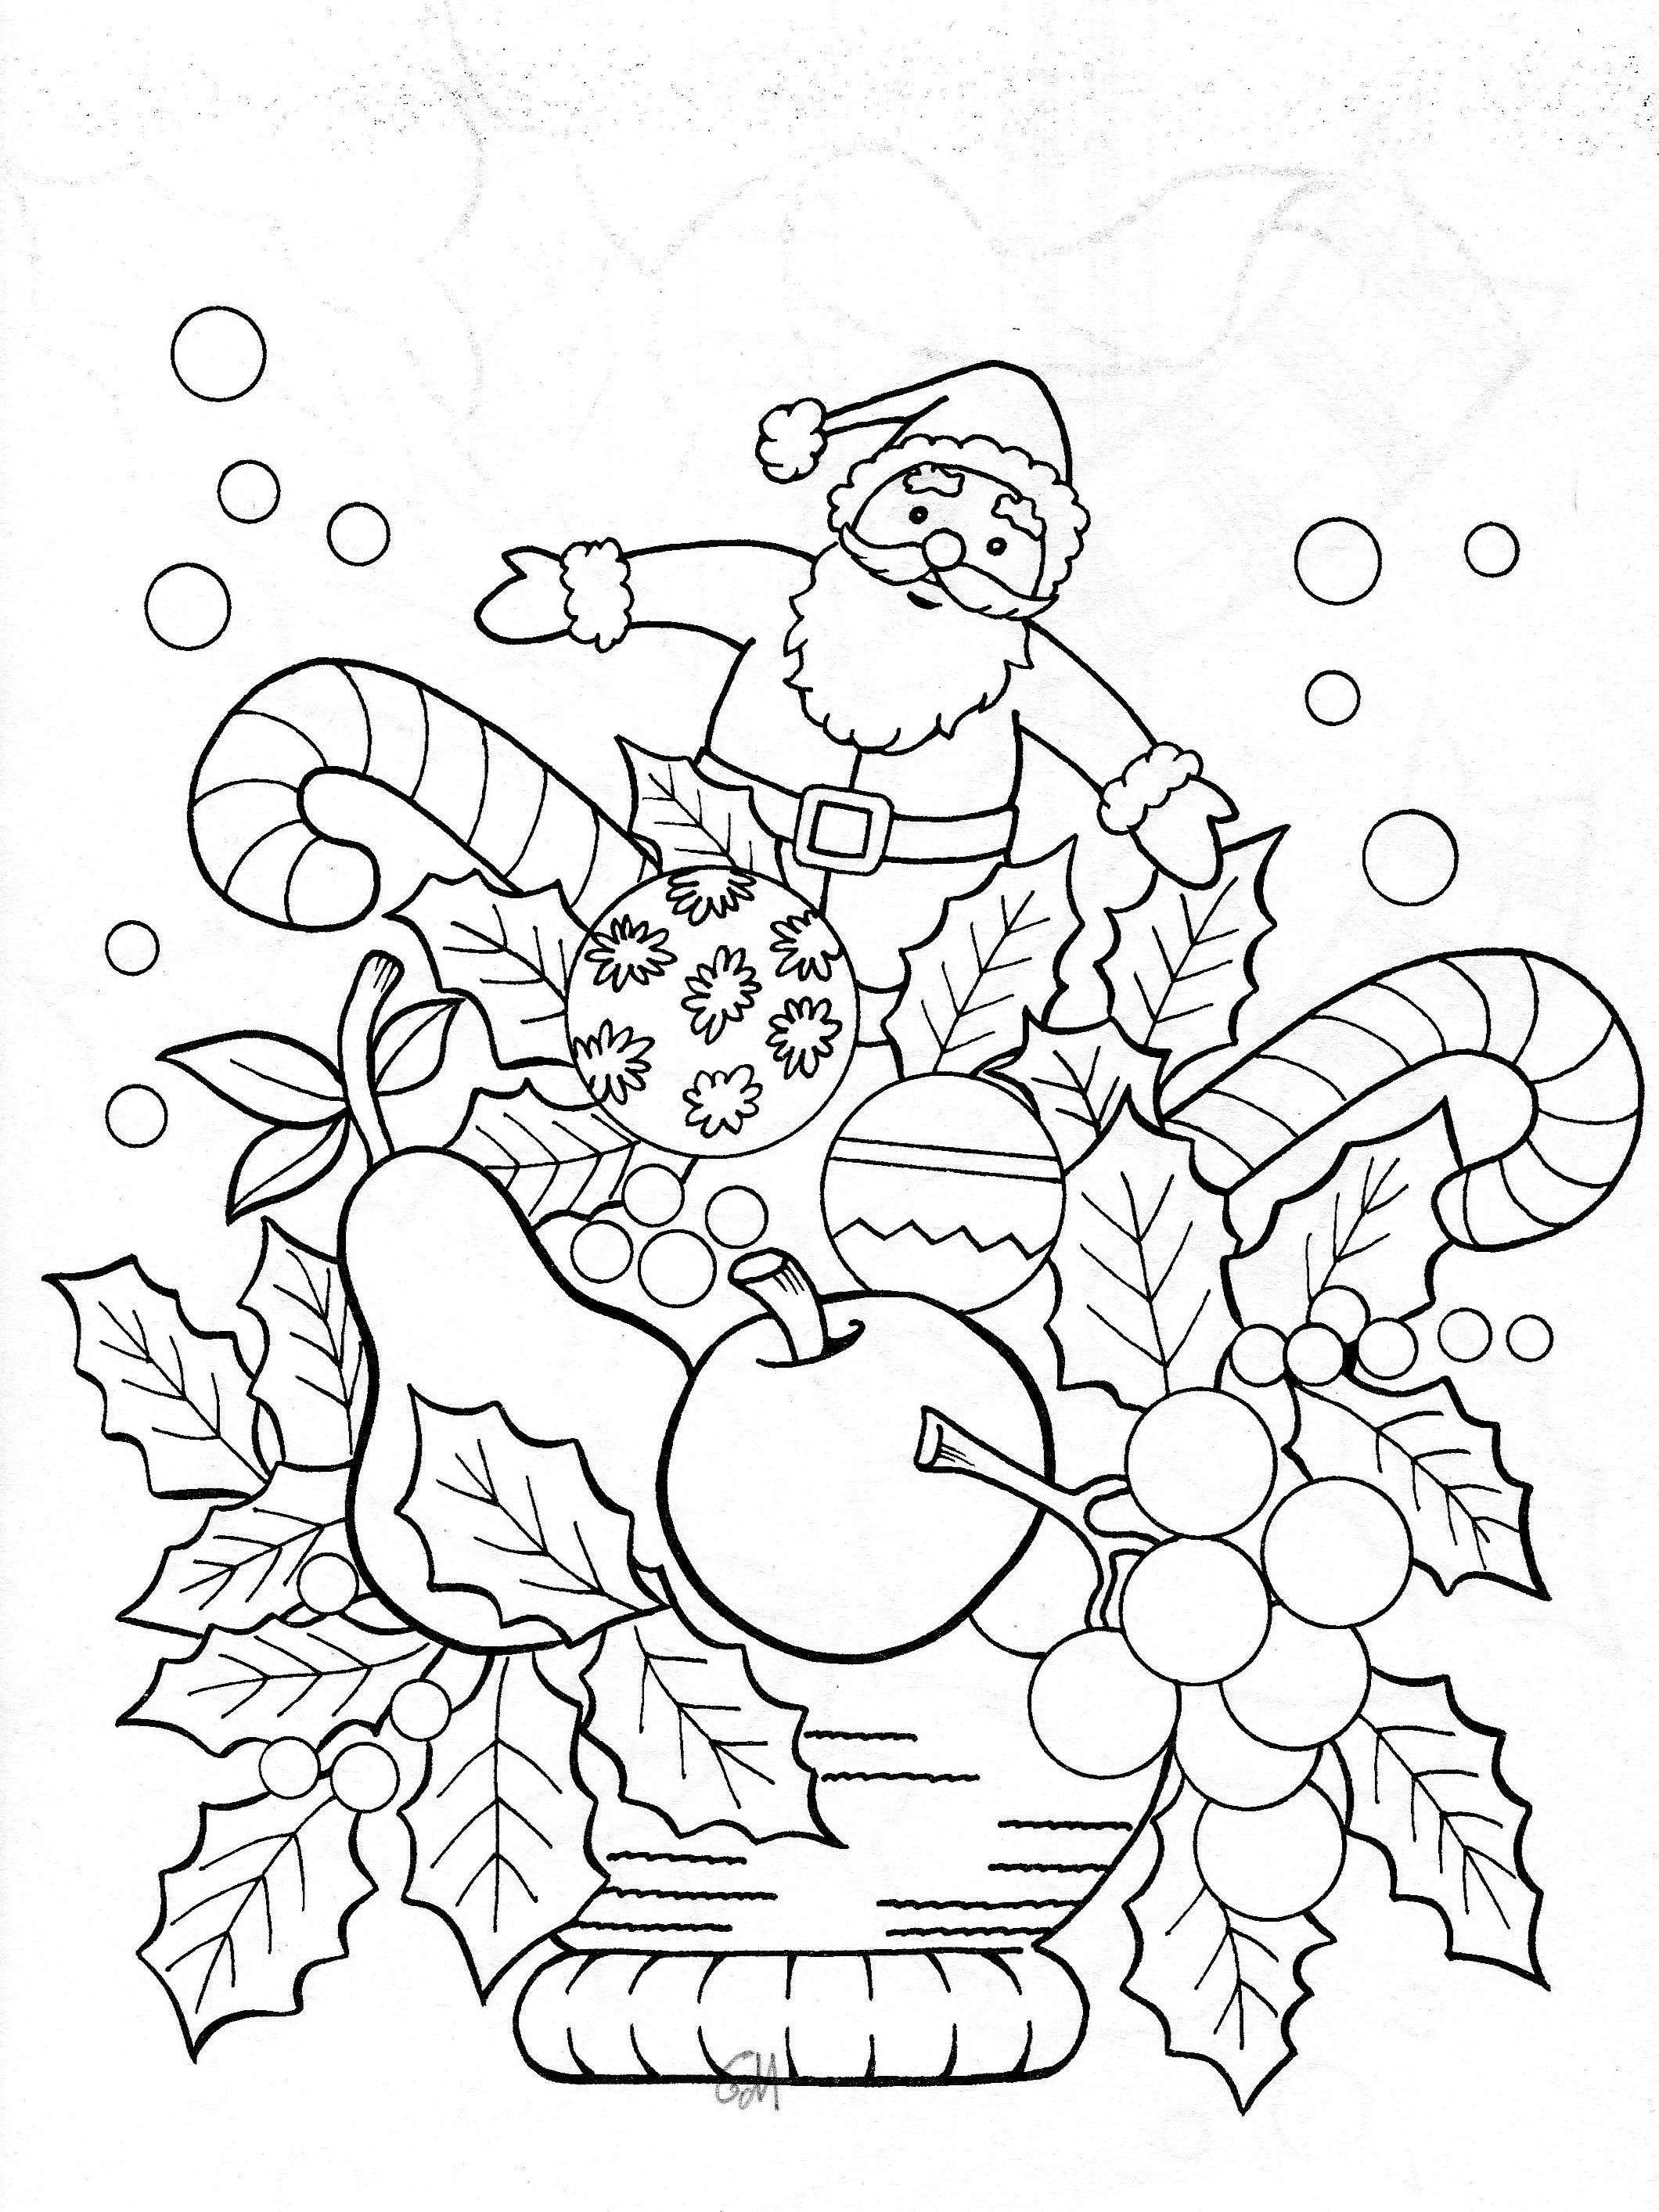 Christmas Elephant Coloring Pages With Cars Awesome 25 Printable